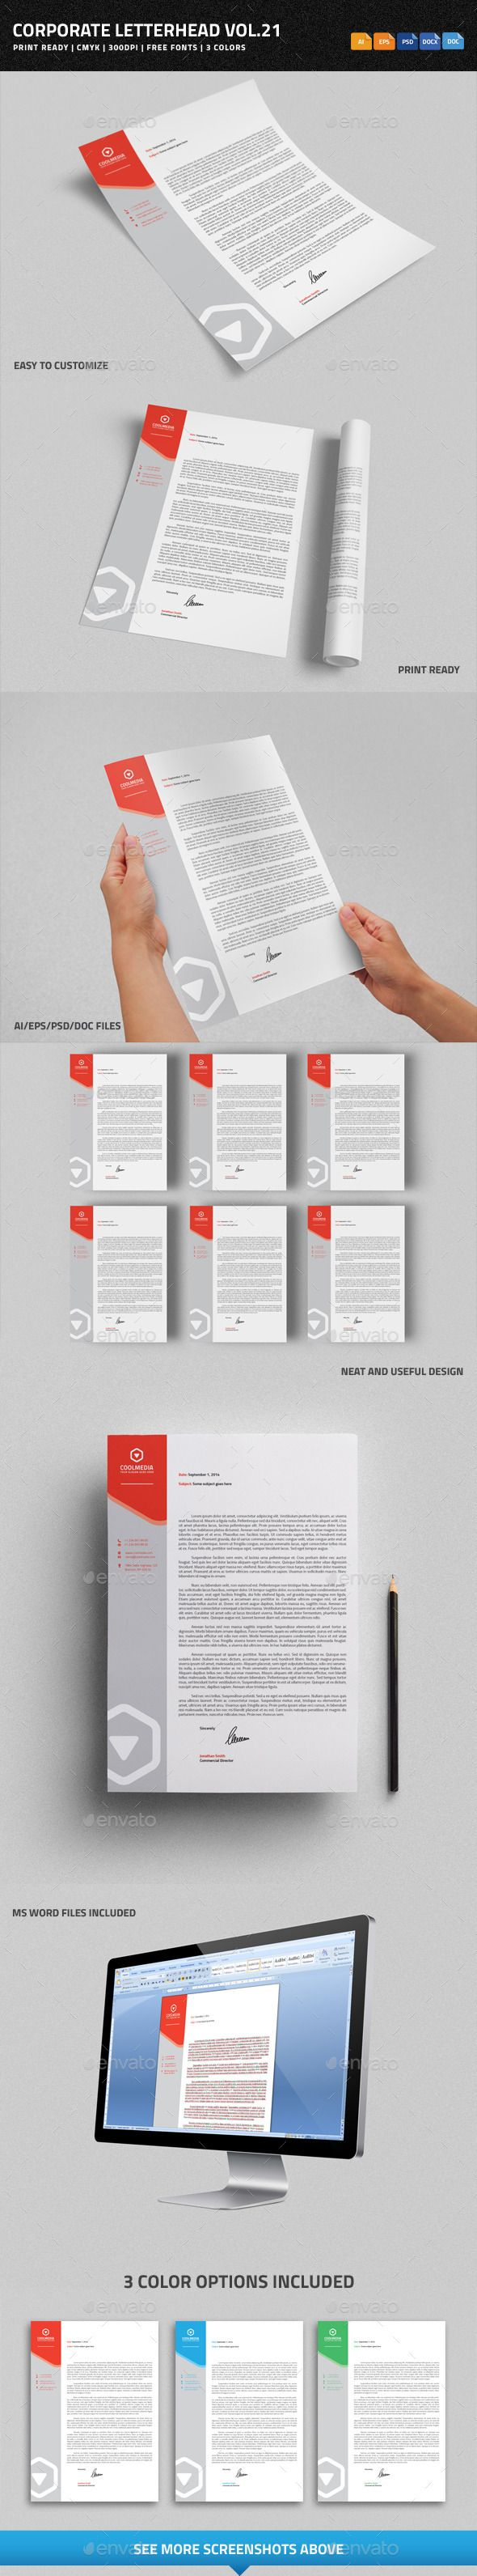 Corporate Letterhead Vol21 With MS Word DOC DOCX